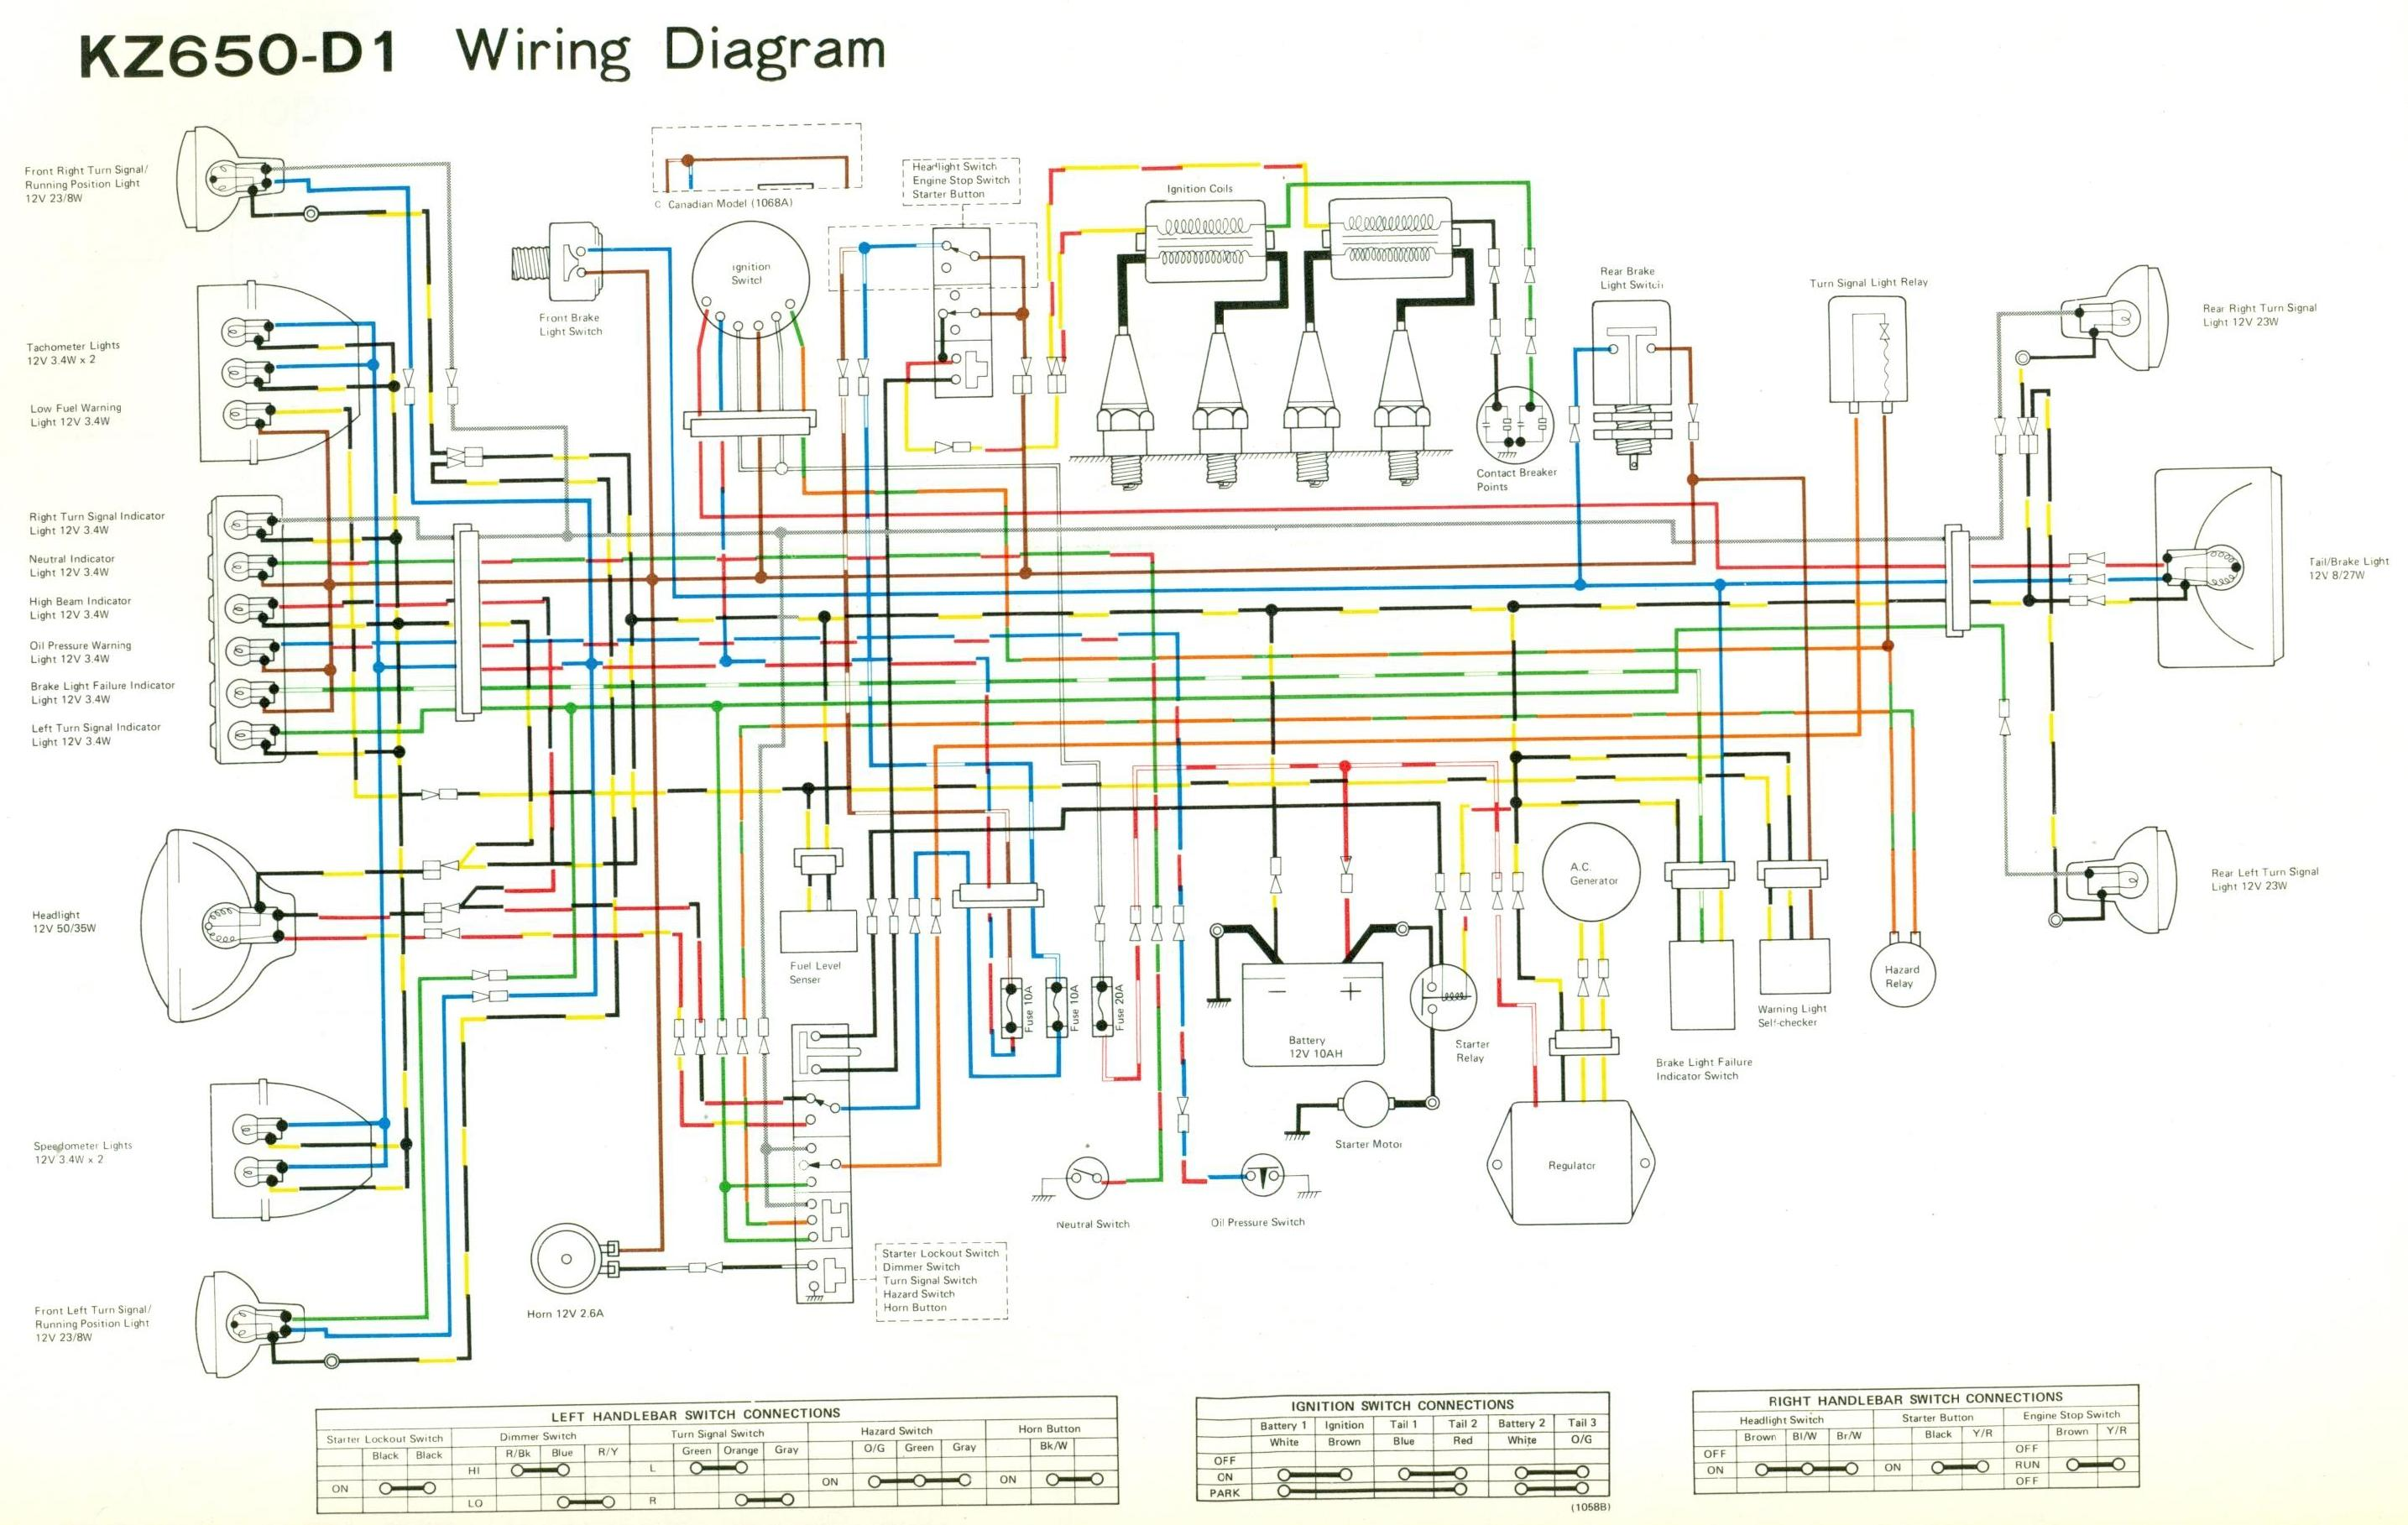 [SCHEMATICS_49CH]  6A7B91 Atc 110 Ignition Wiring Diagram | Wiring Resources | Honda Atv Ignition Switch Wiring Diagram |  | Wiring Resources